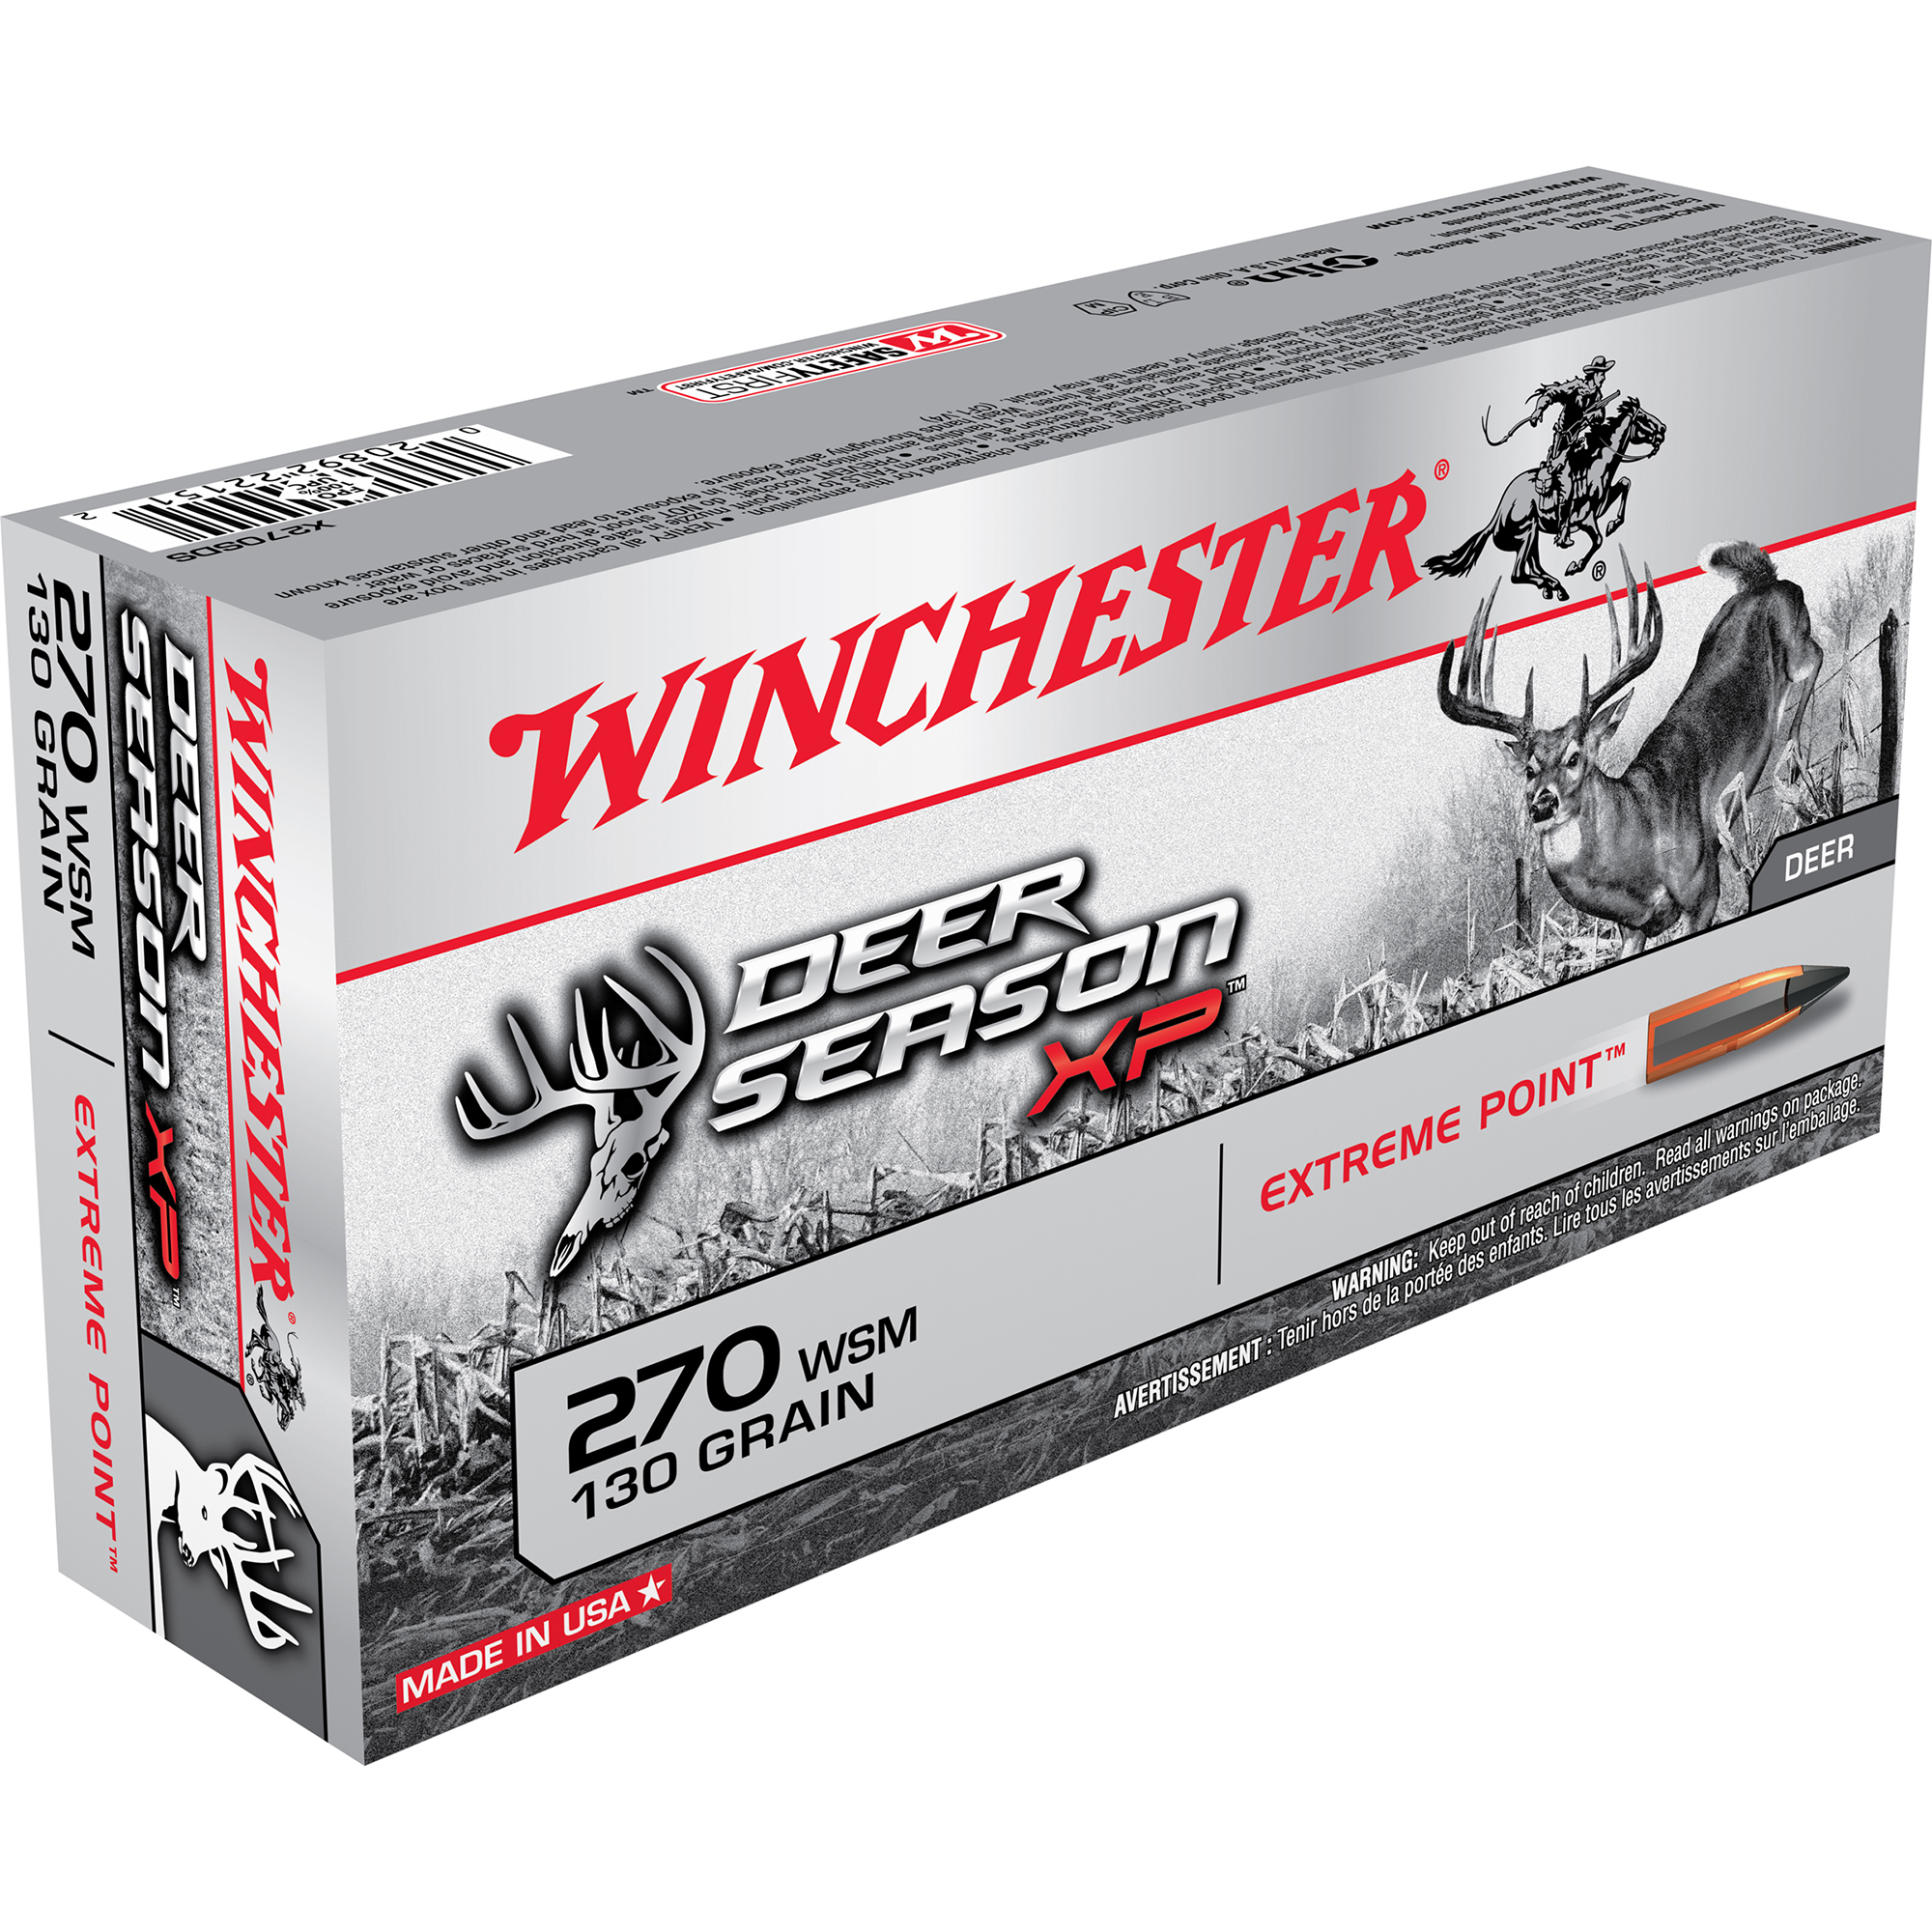 Winchester Deer Season XP Rifle Ammo, .270 WSM, 130-gr, Extreme Point